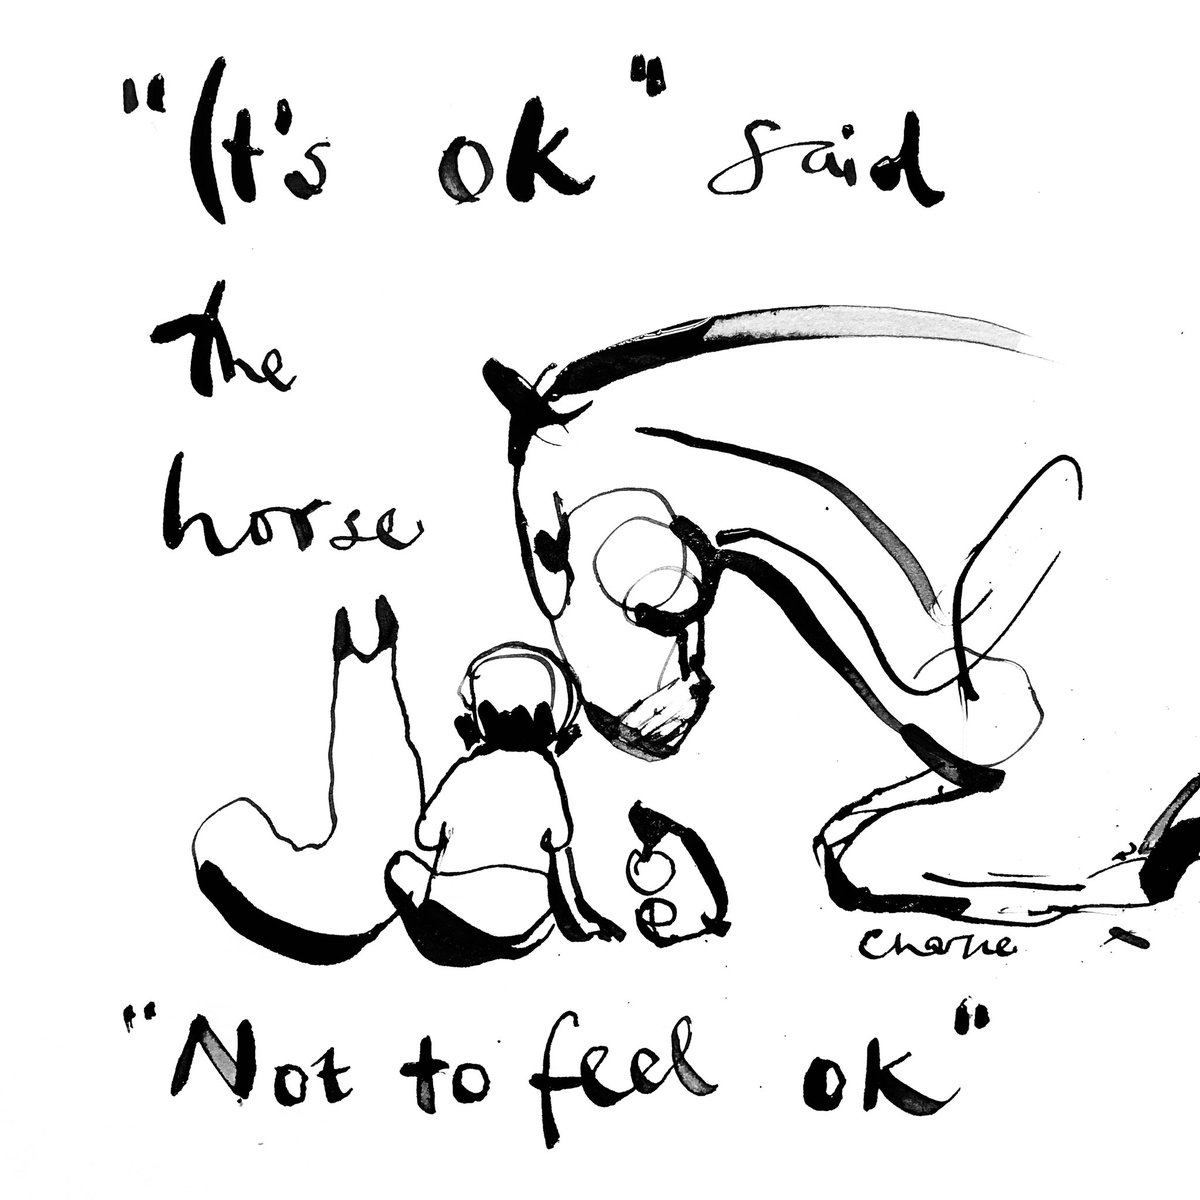 A nurse asked me to draw this for her team. I thought I'd post it here. It's a well known phrase but bears repeating.